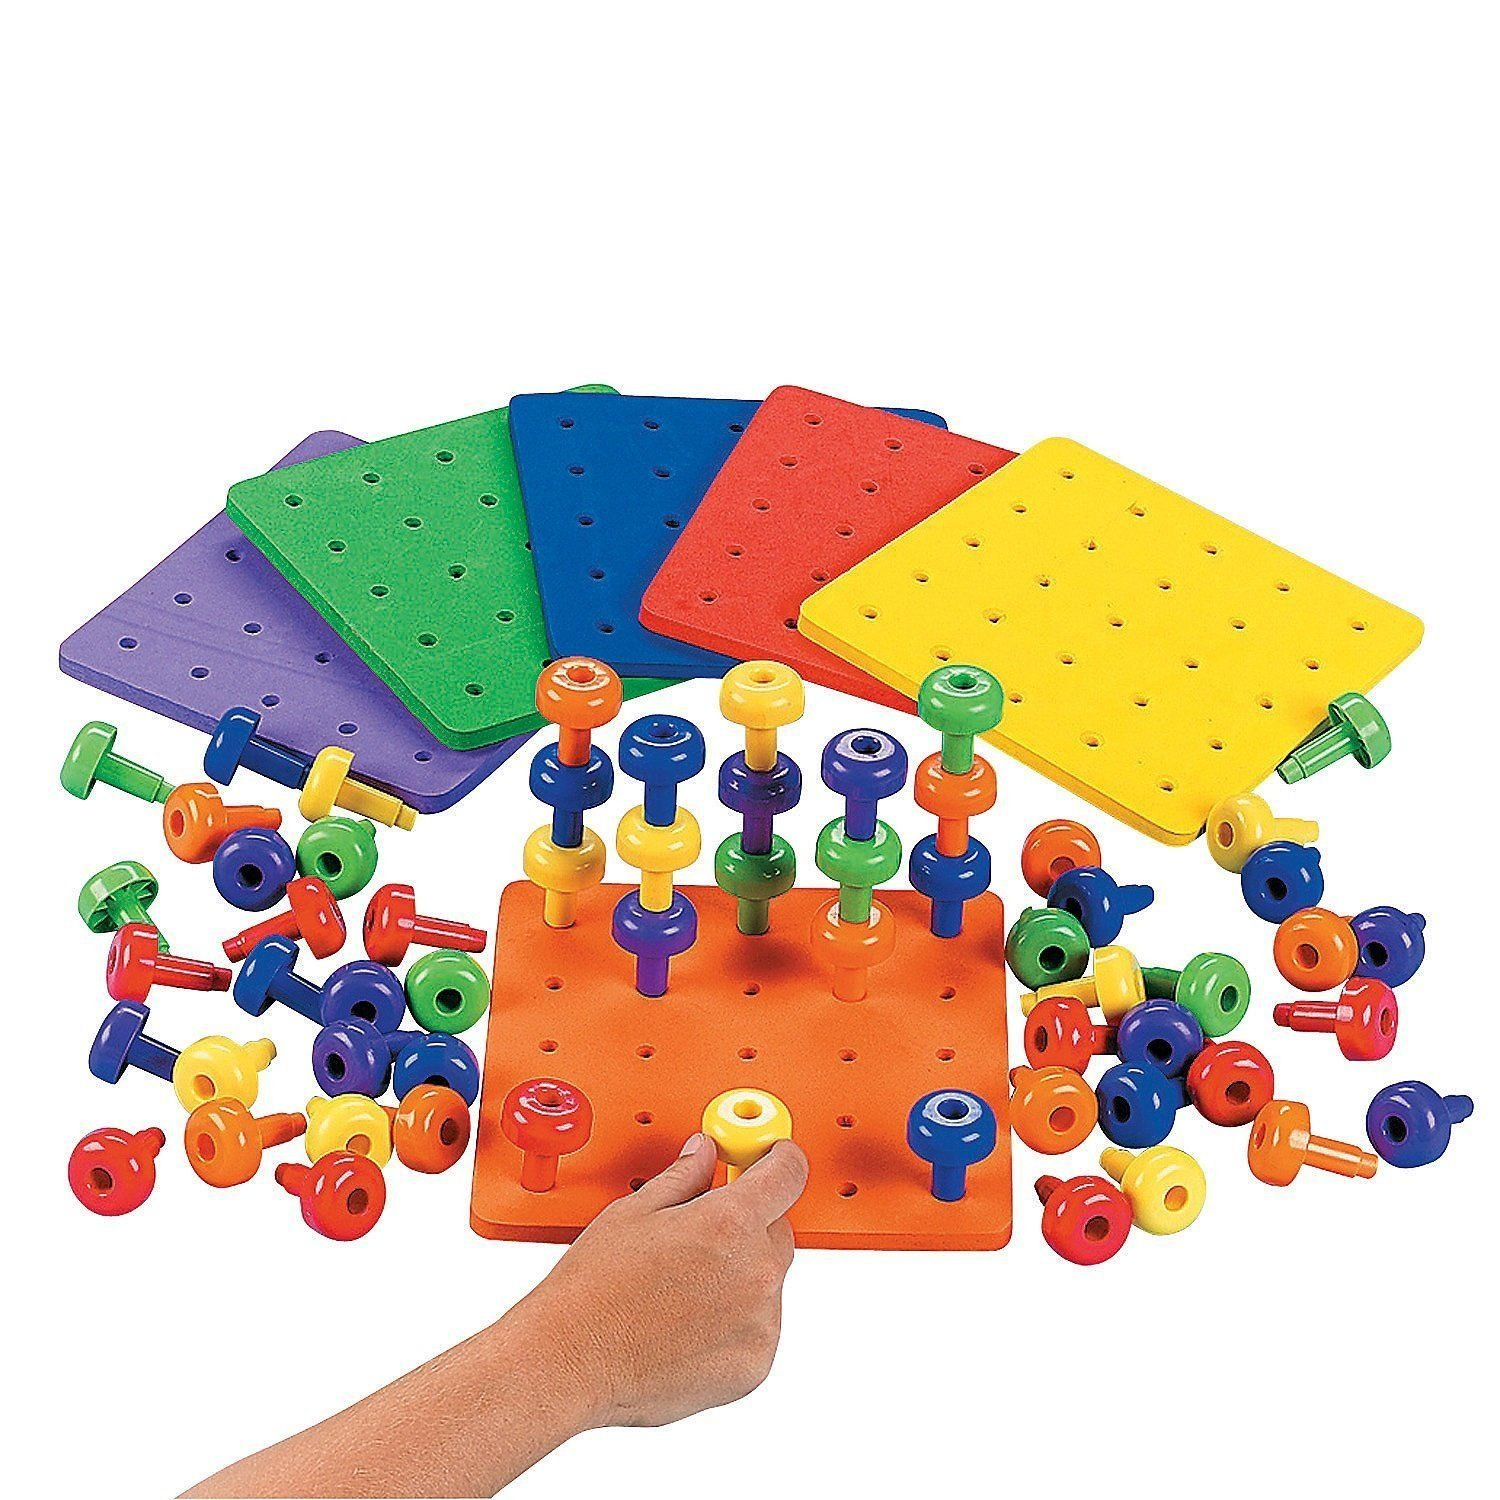 正規店仕入れの Stack It Peg Board Stack Game With Board Therapy Occupational Therapy Autism Fine Motor Skills B01KT444JO, YSカスタム:42b9a3e8 --- dou13magadan.ru